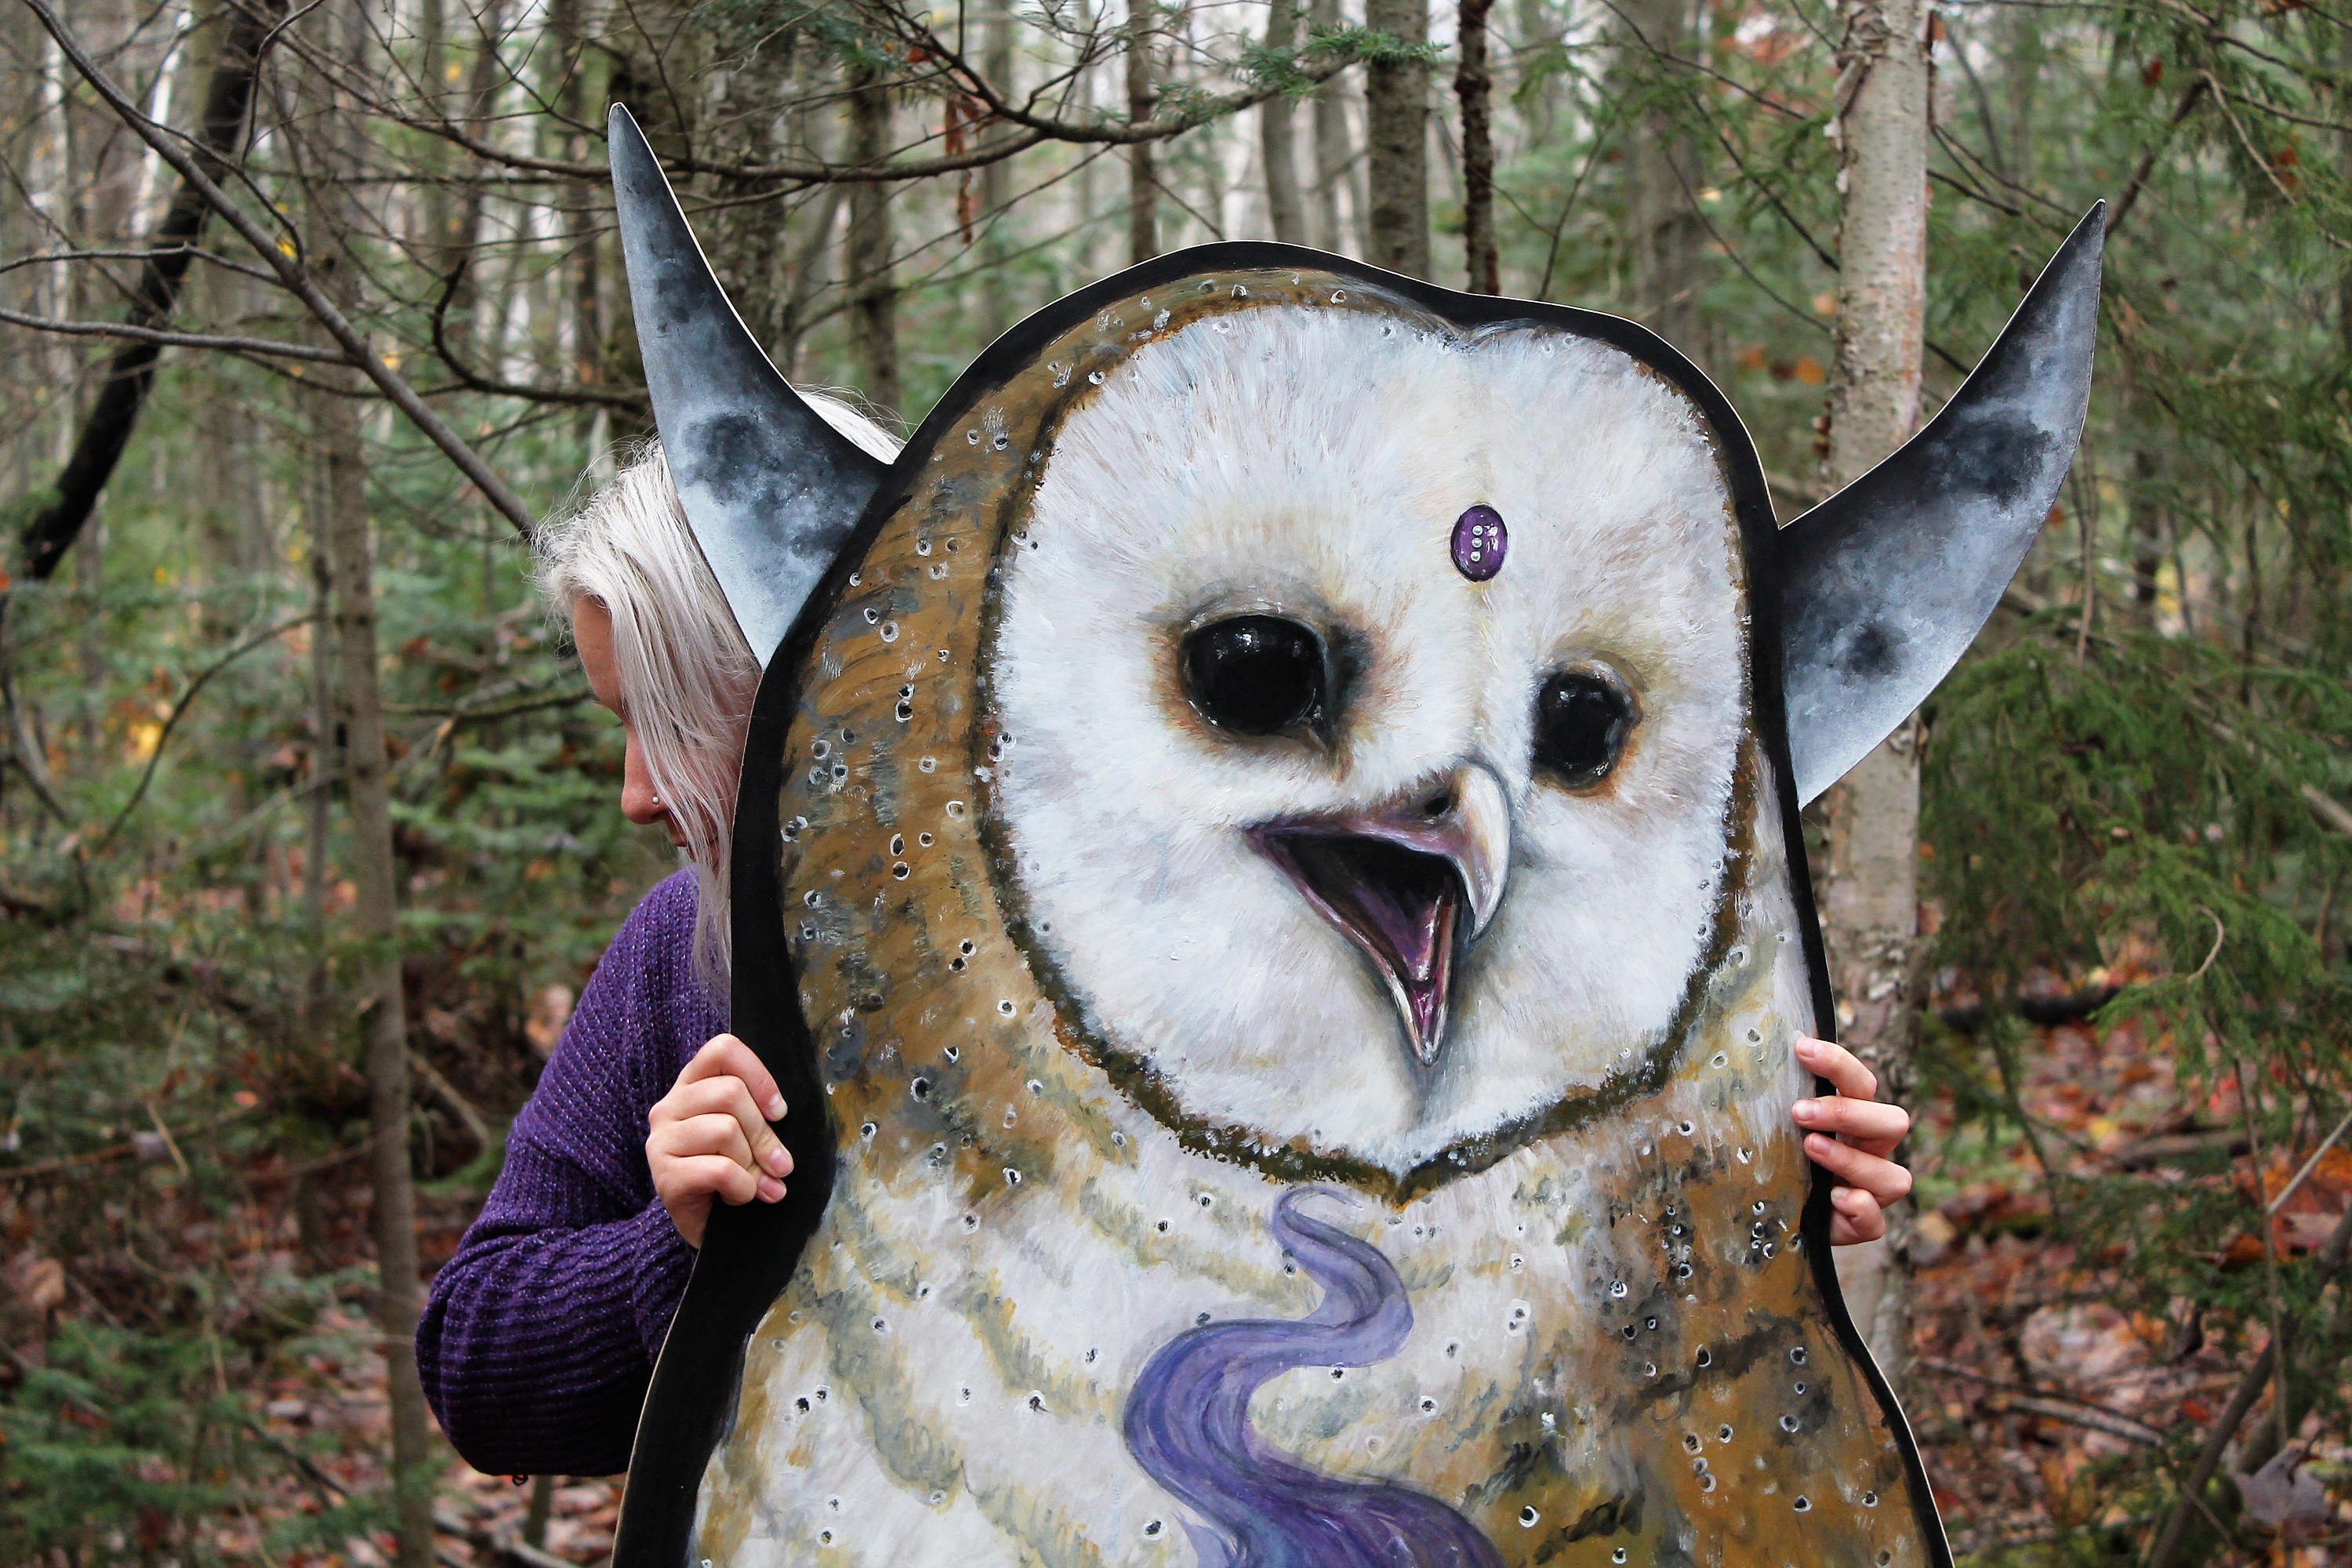 Huge Barn Owl Painting / Wall Decor - Owl Wall Art- Witchy Owl Painting-  Cauldron Moon And Lantern- Acrylic On Massonite- Lantern Light for Atlantis Faux Taxidermy Wall Decor (Image 13 of 30)